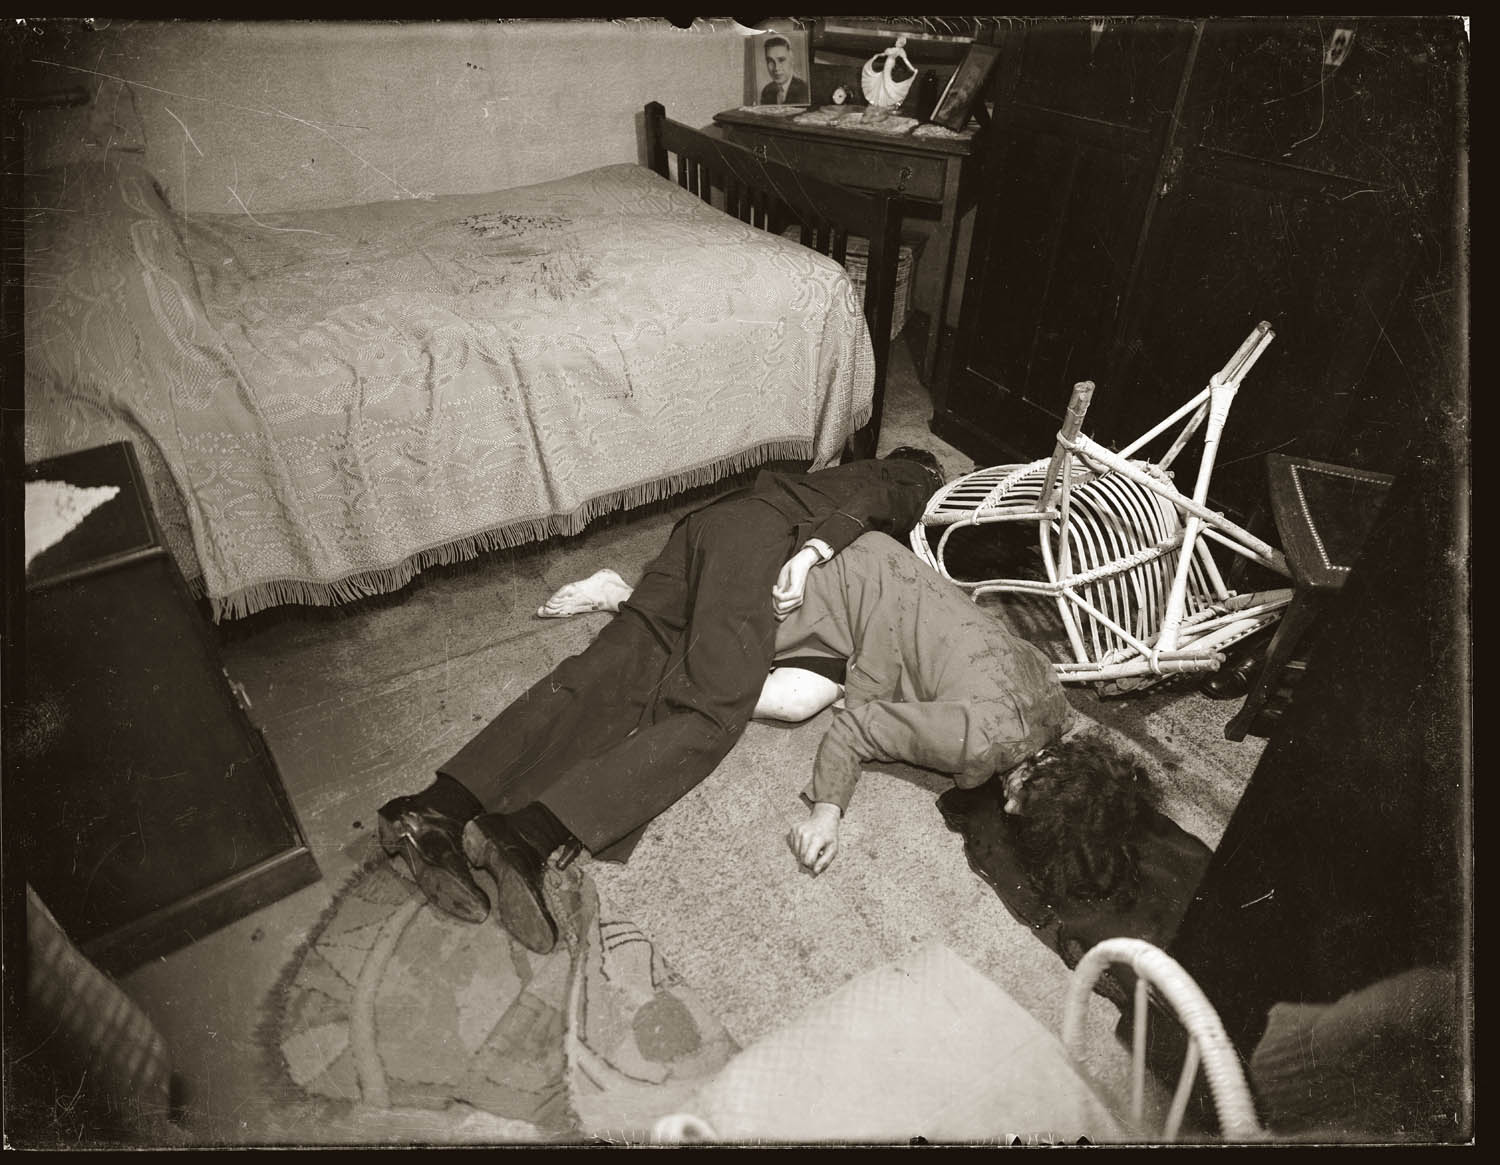 Bedroom, scene of shooting murder of Alice Isabella Anderson by Maurice Reuben John Anderson, and the subsequent suicide of the latter, at 75 Birrell St Waverley, NSW, 2 May 1944.